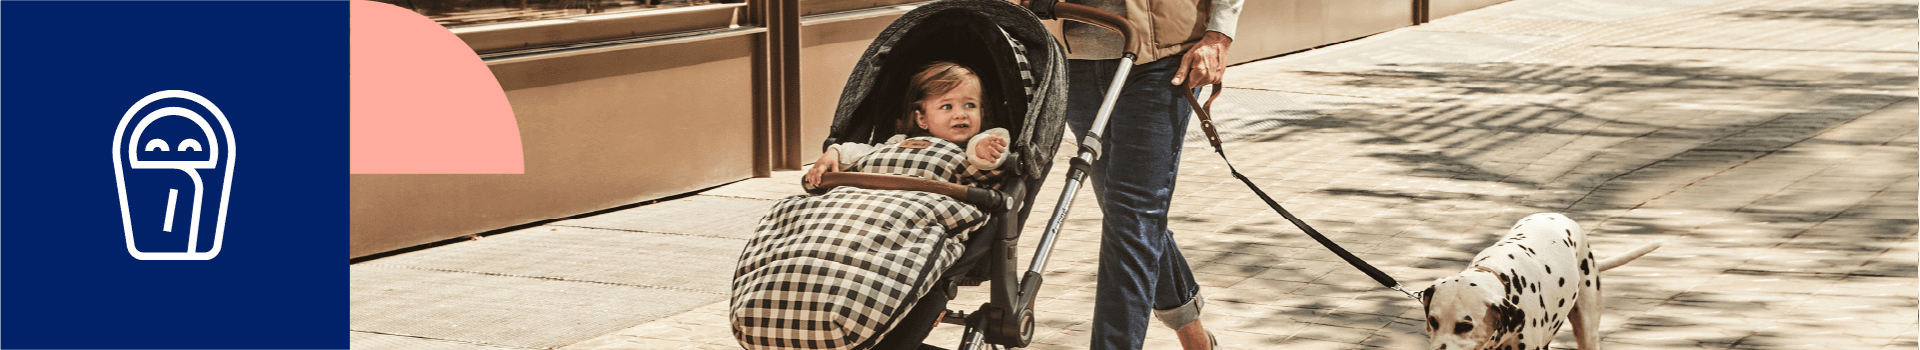 Jane Pushchair Accessories   Everything for your baby's pushchair